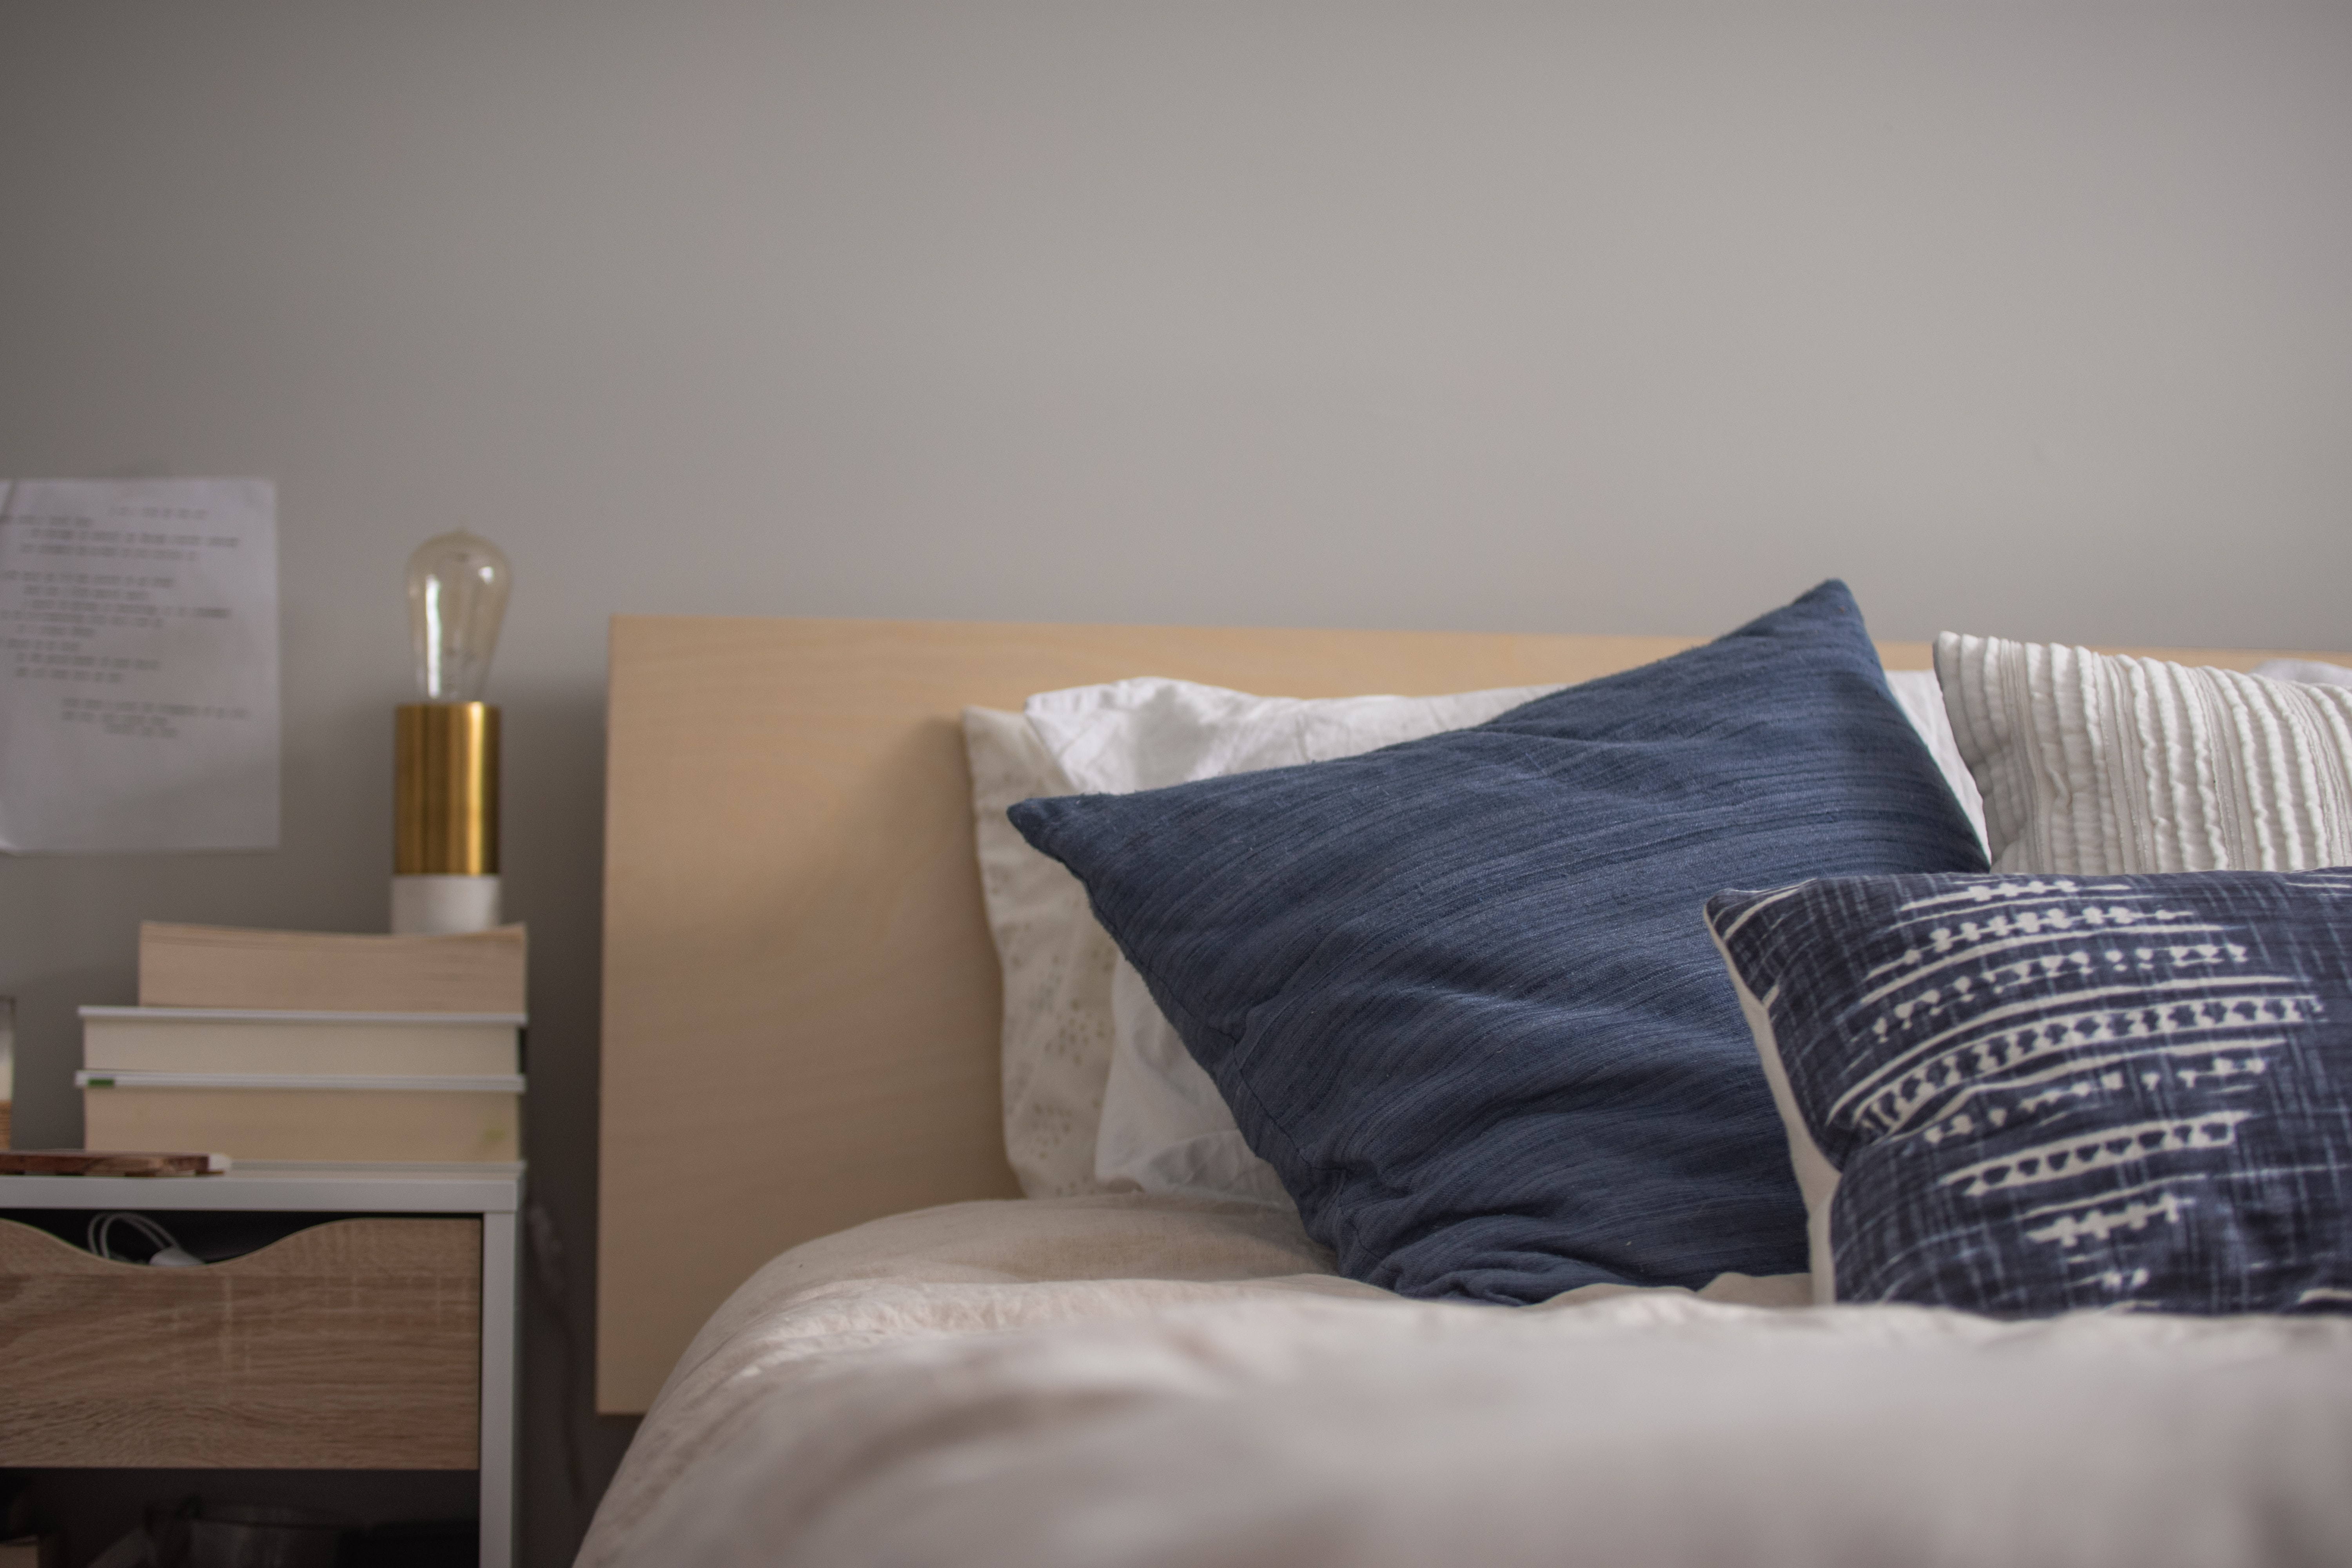 pillows on bed inside house